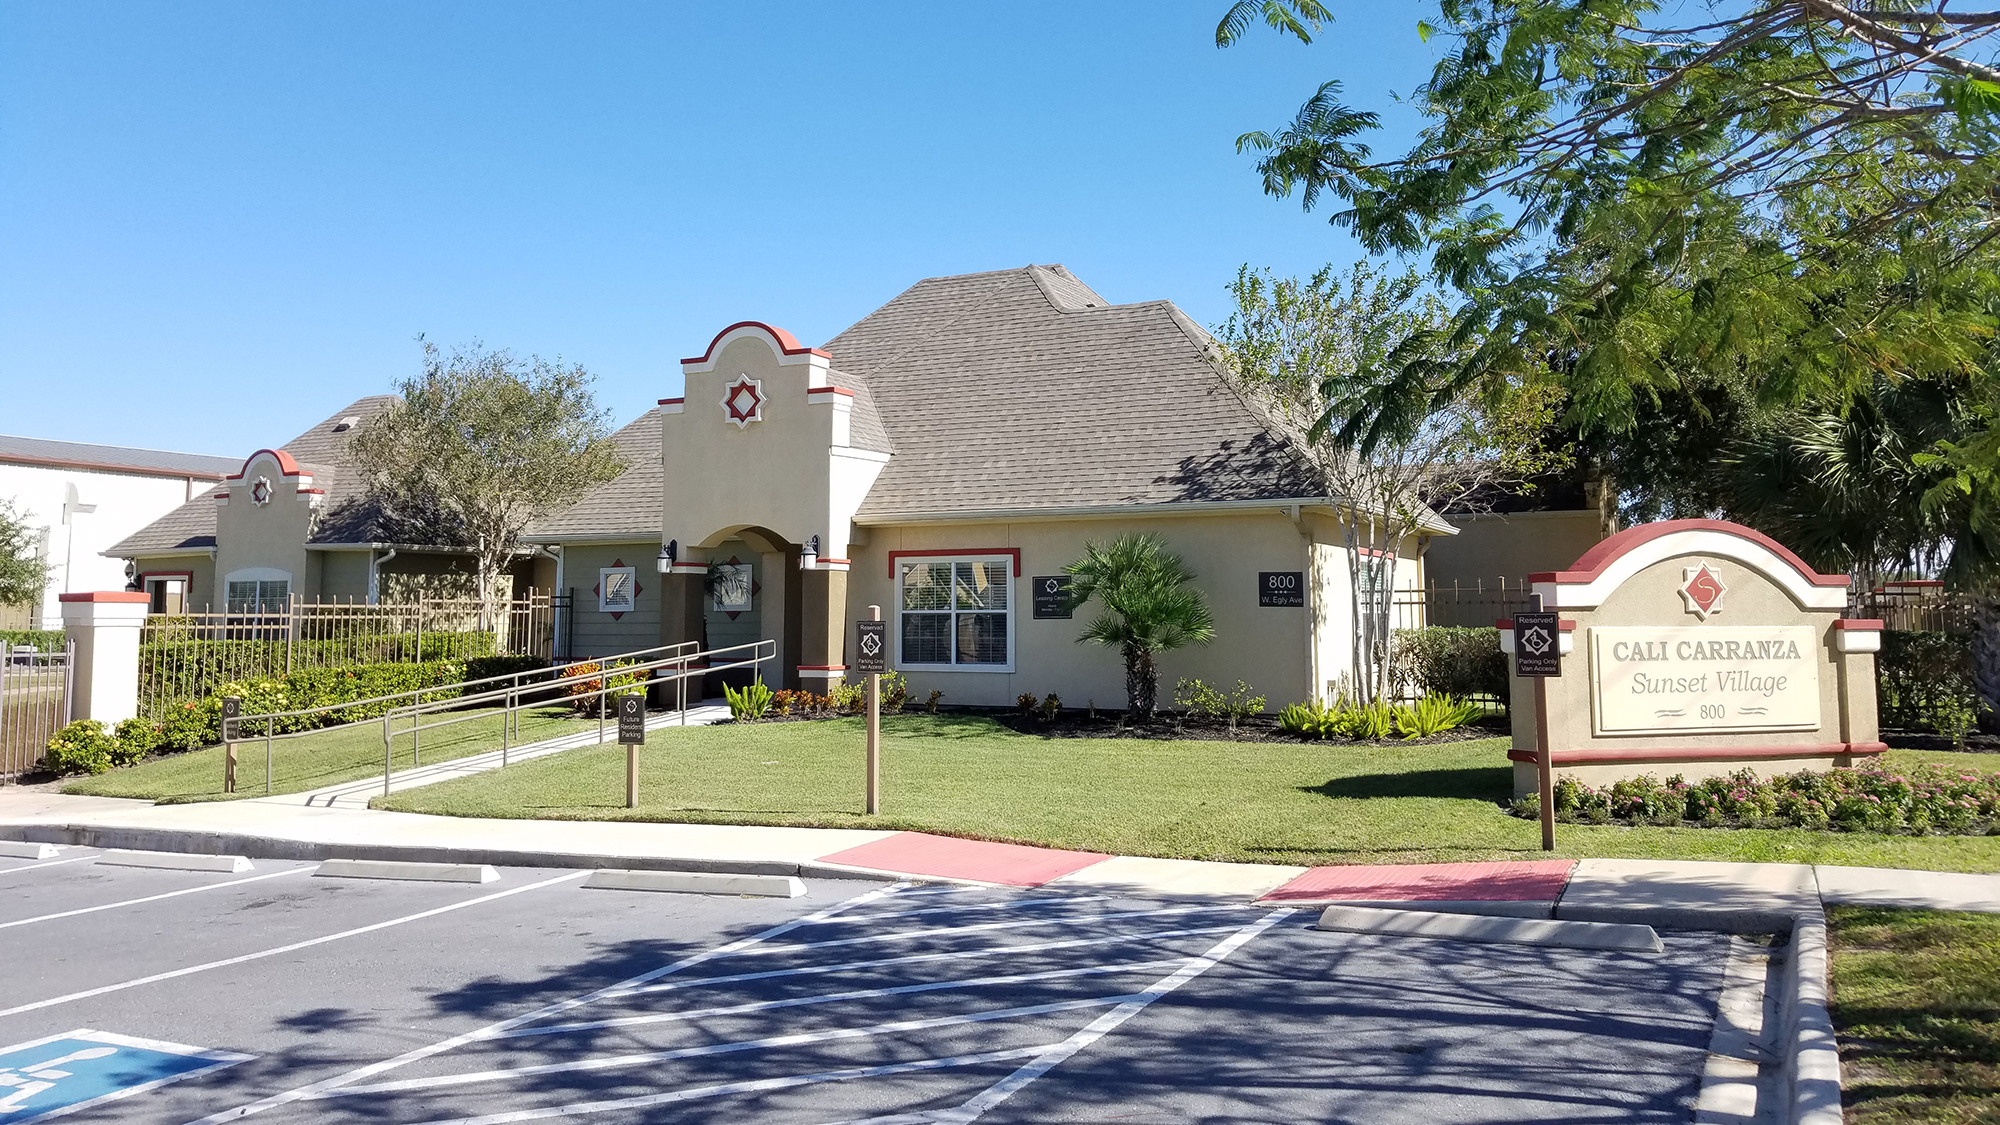 Image of Sunset Village Apartments in Pharr, Texas